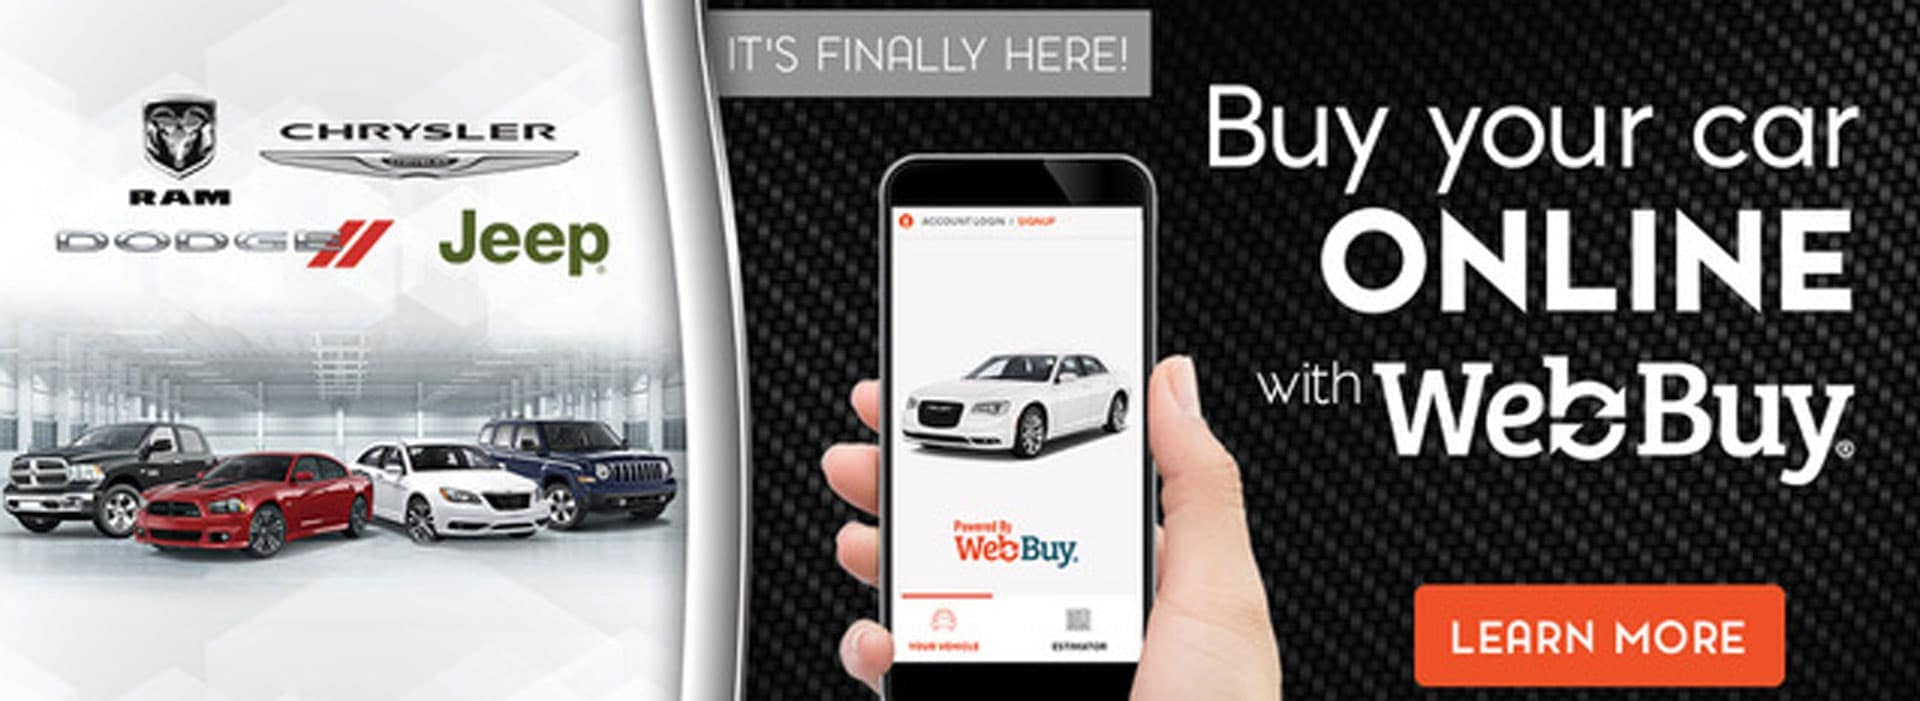 Buy your car online with WebBuy